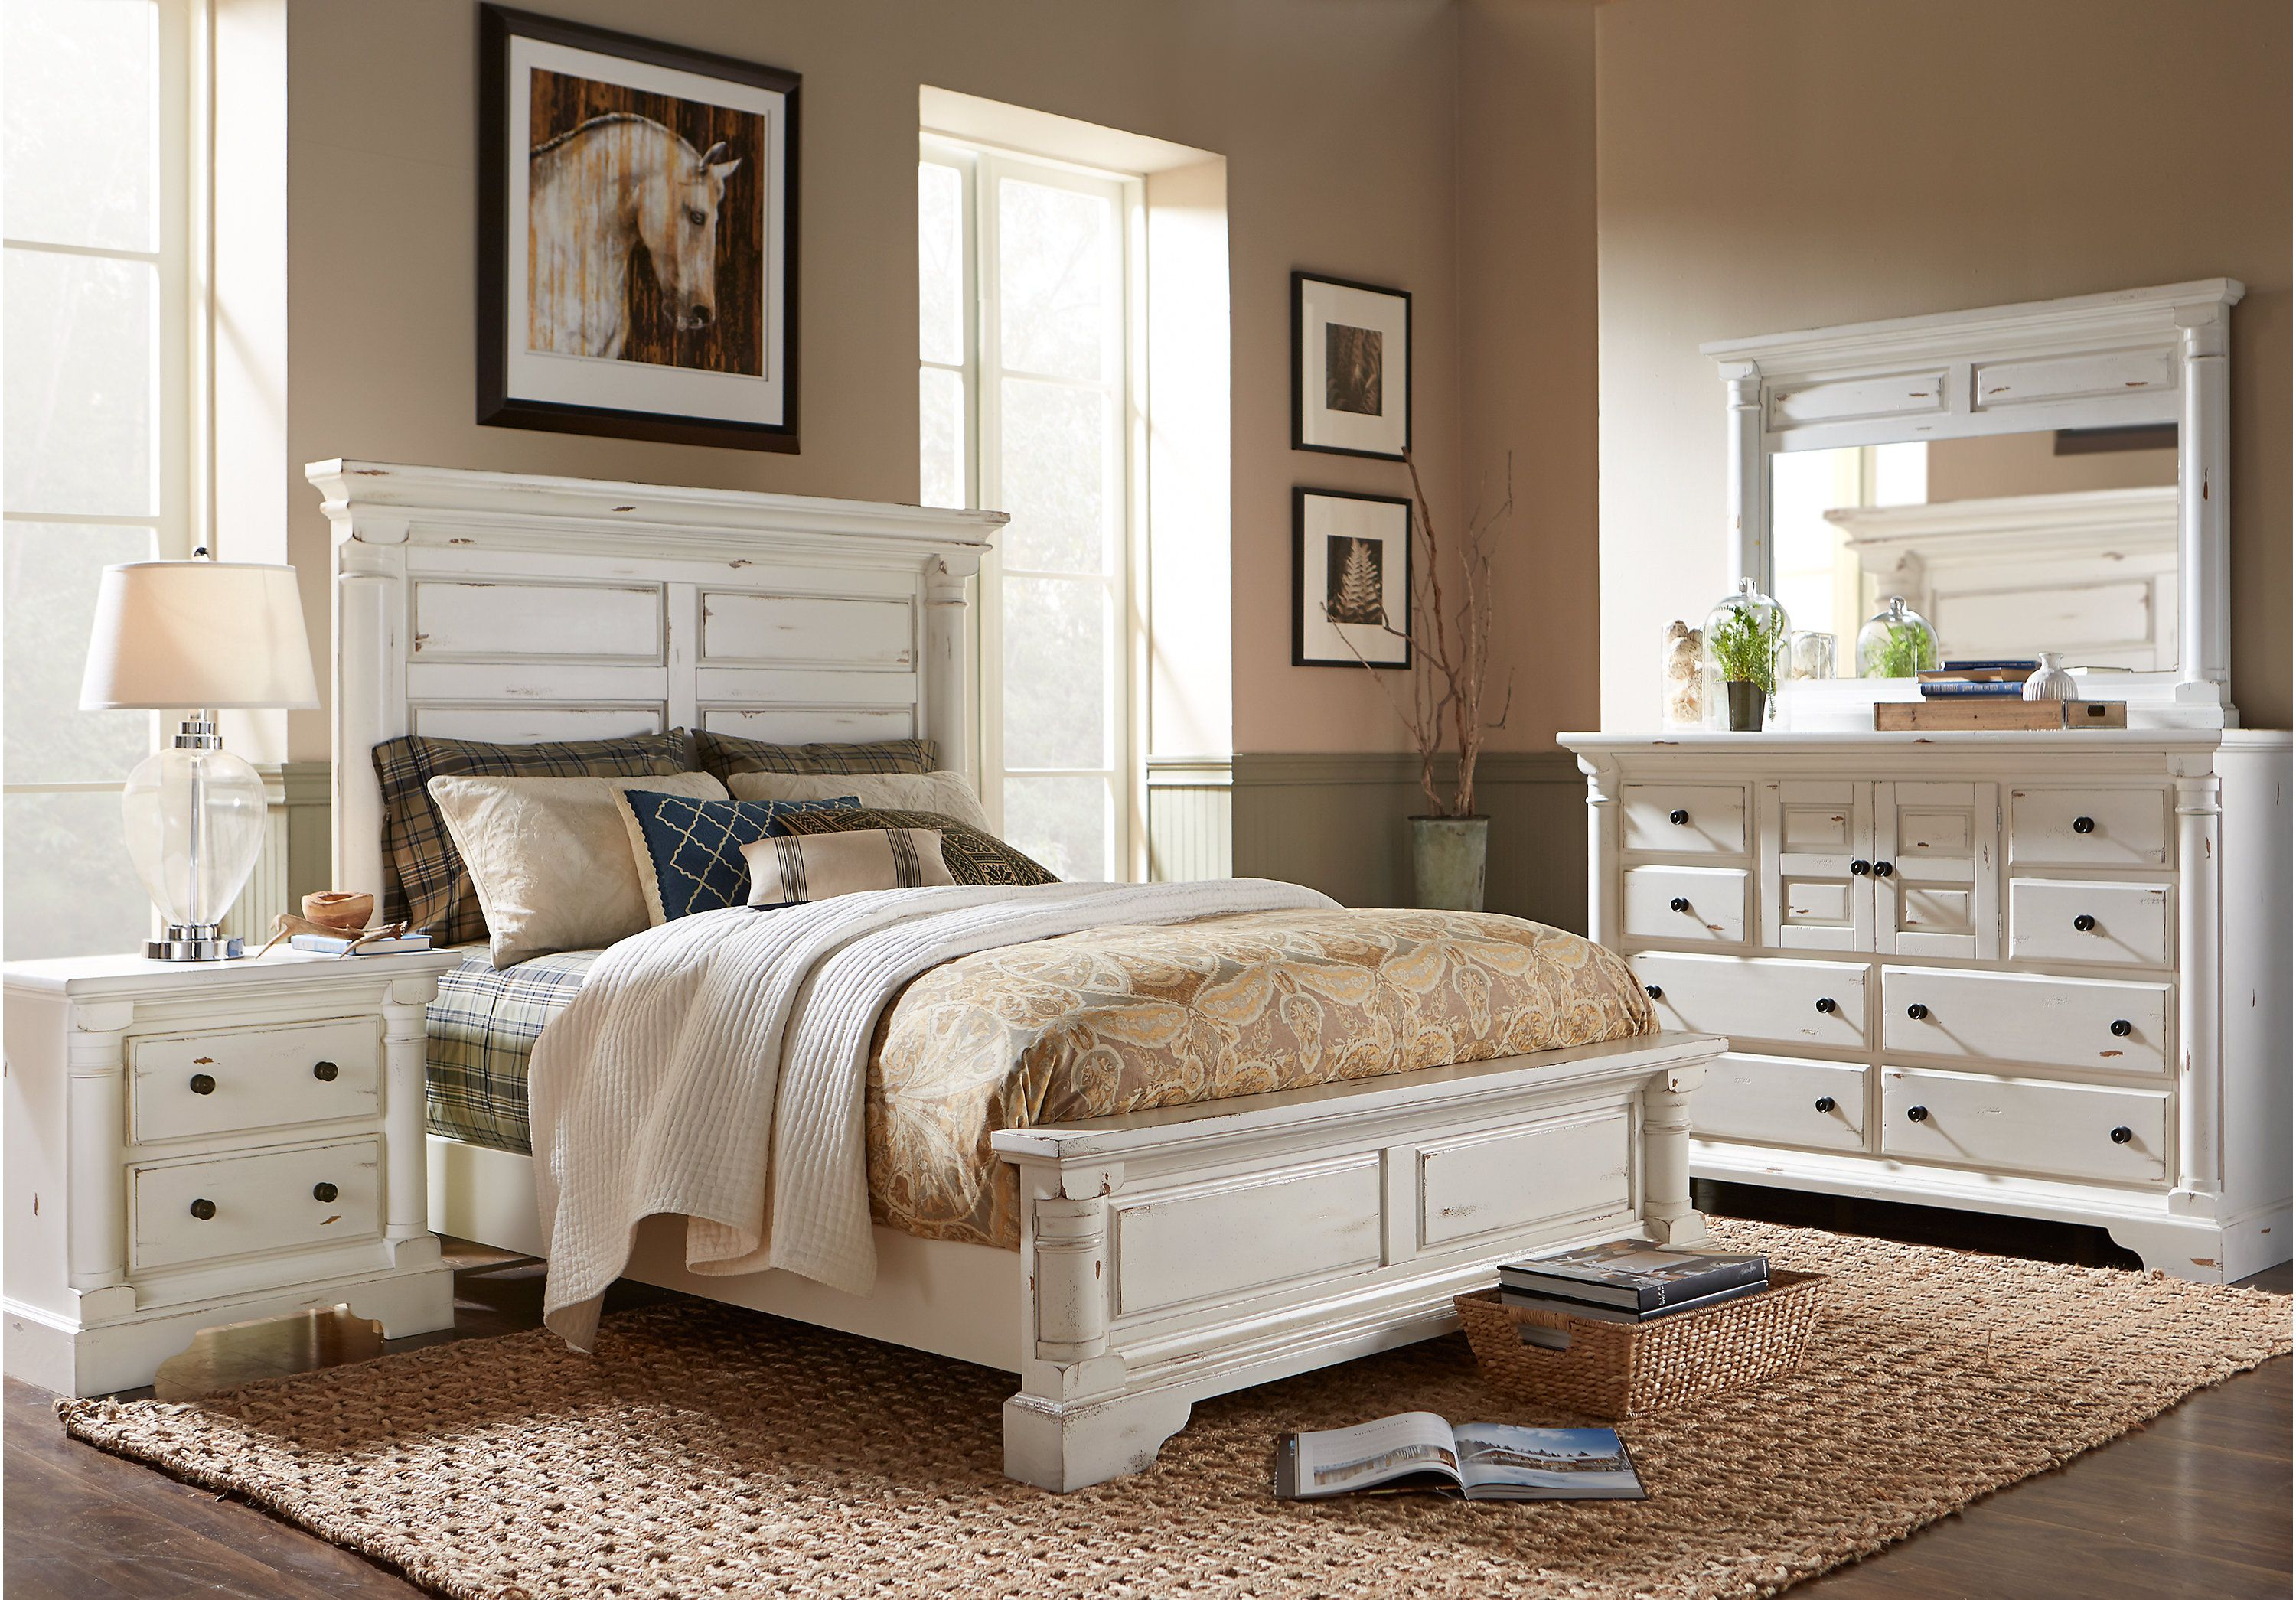 Claymore Park Off White 8 Pc King Panel Bedroom King Bedroom Sets White Bedroom Set King Bedroom Sets Off White Bedrooms